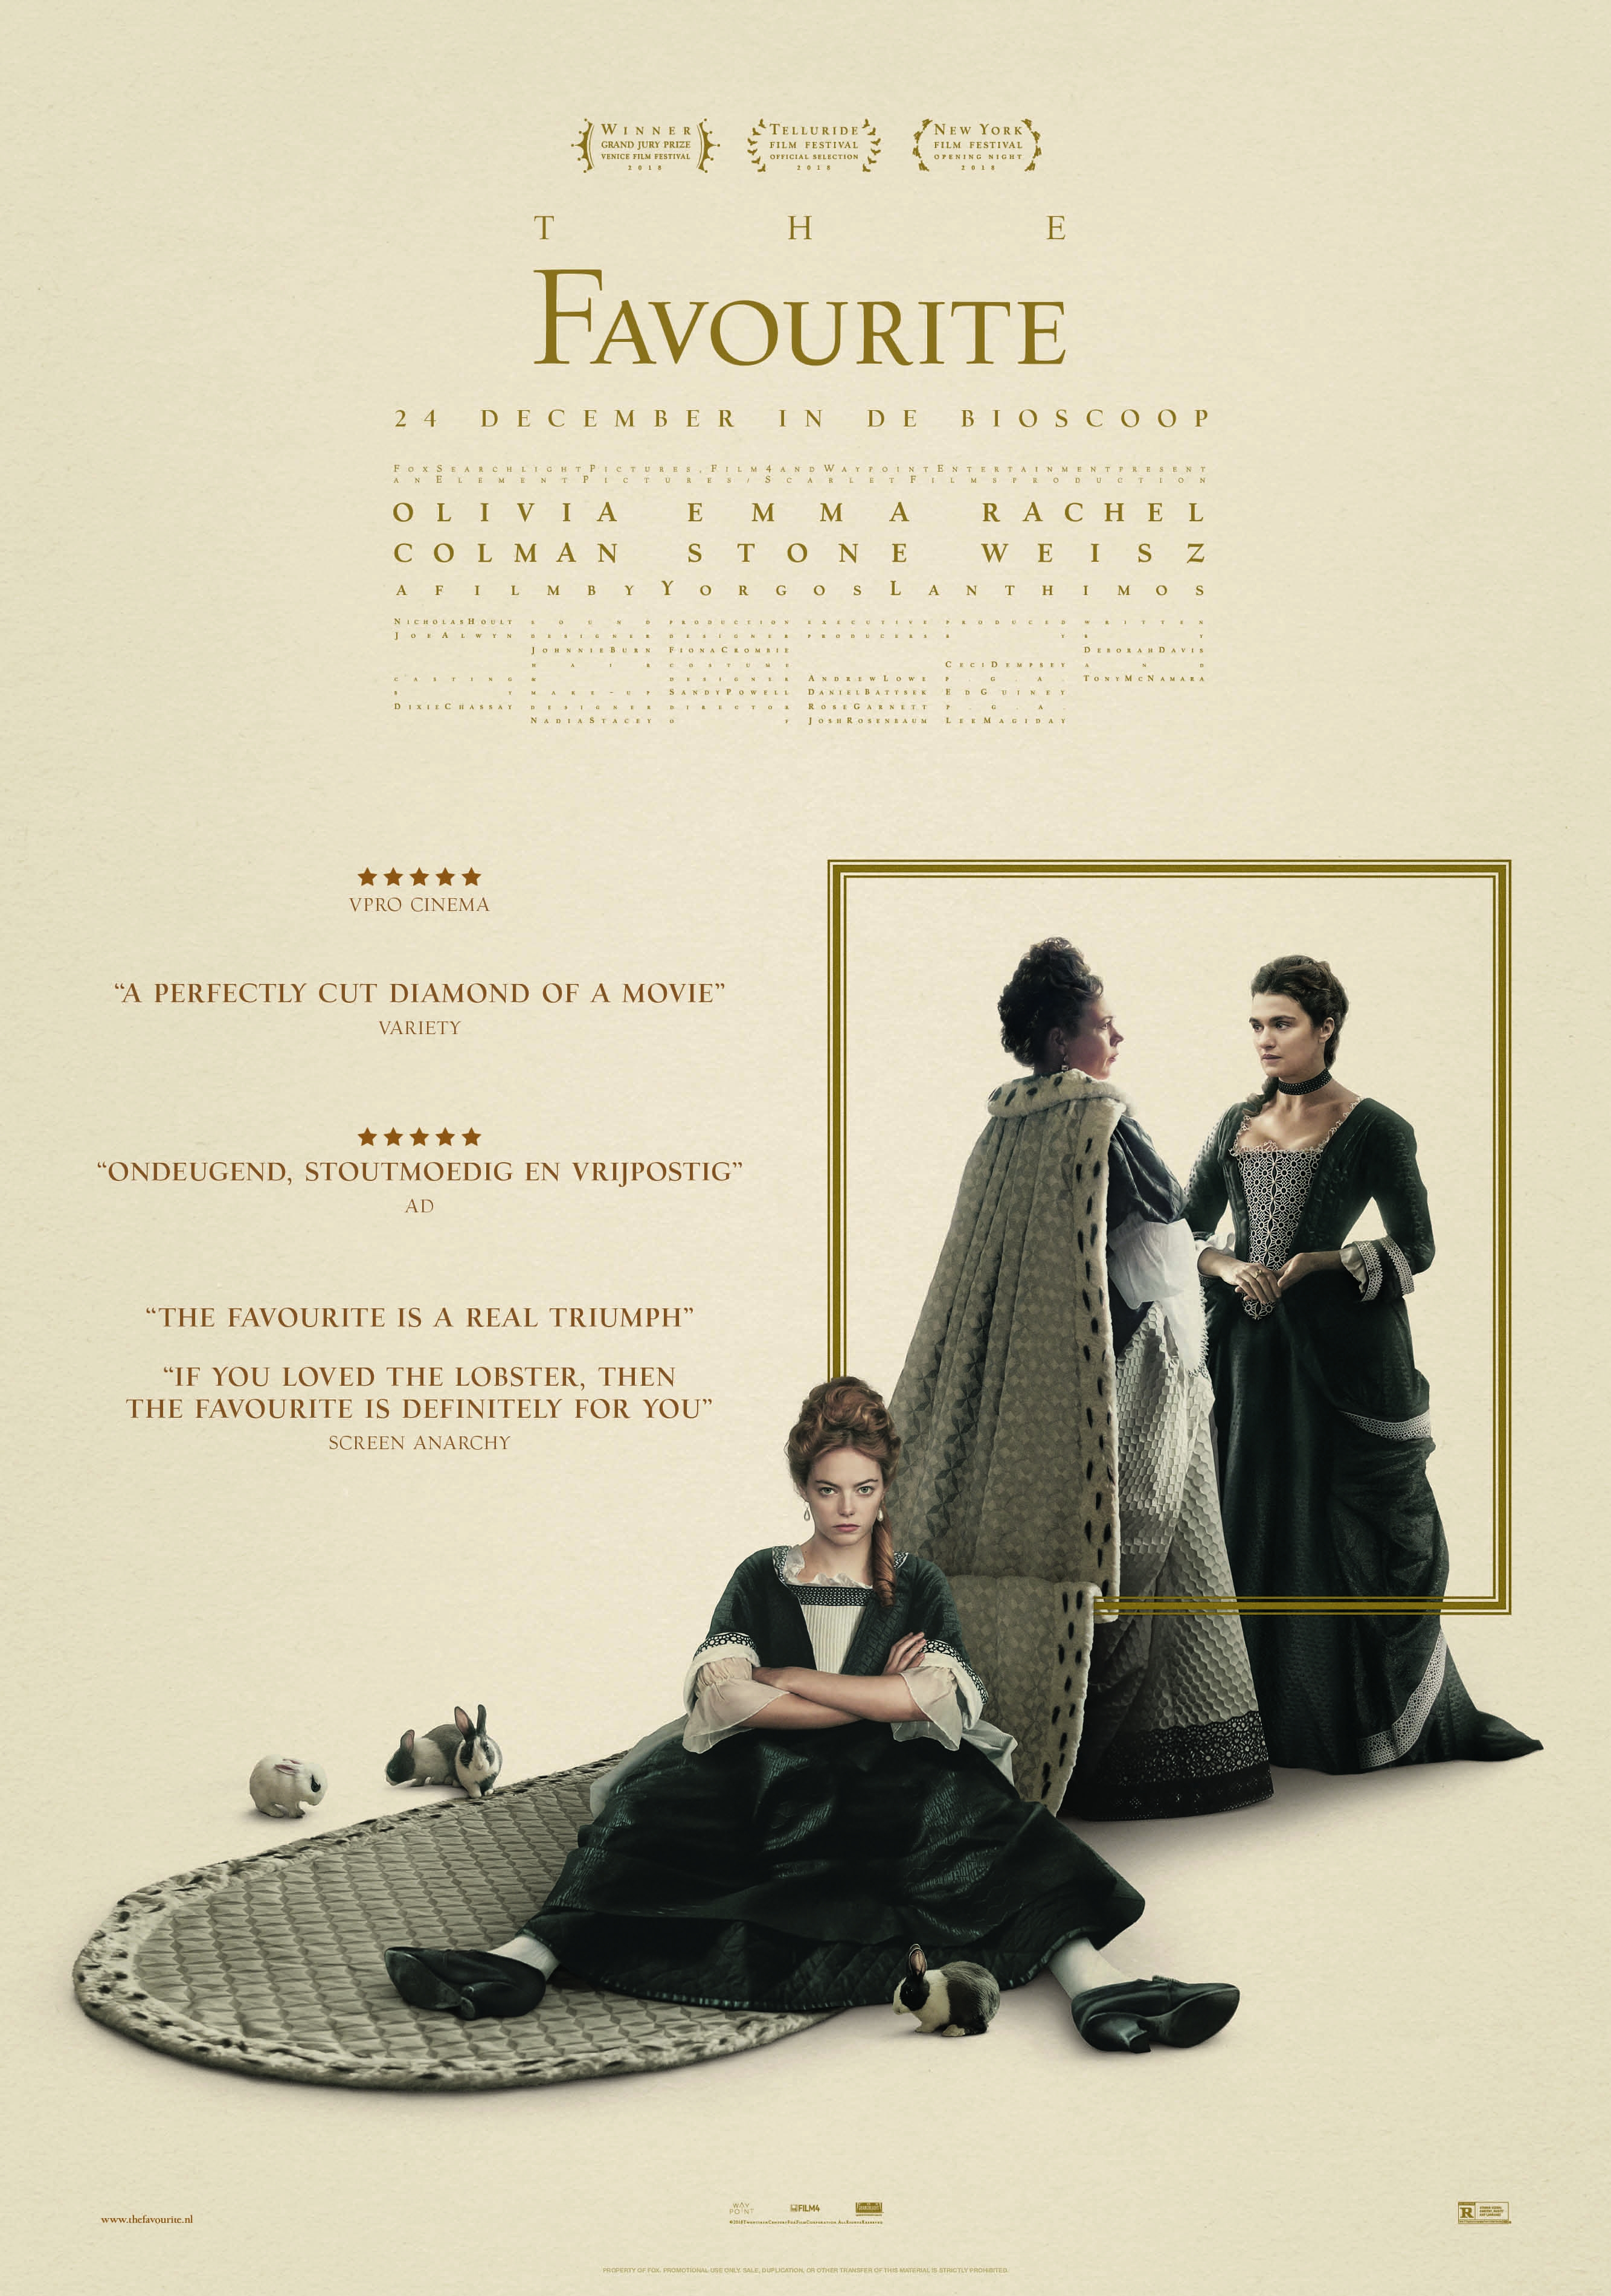 The Favourite poster, © 2018 20th Century Fox